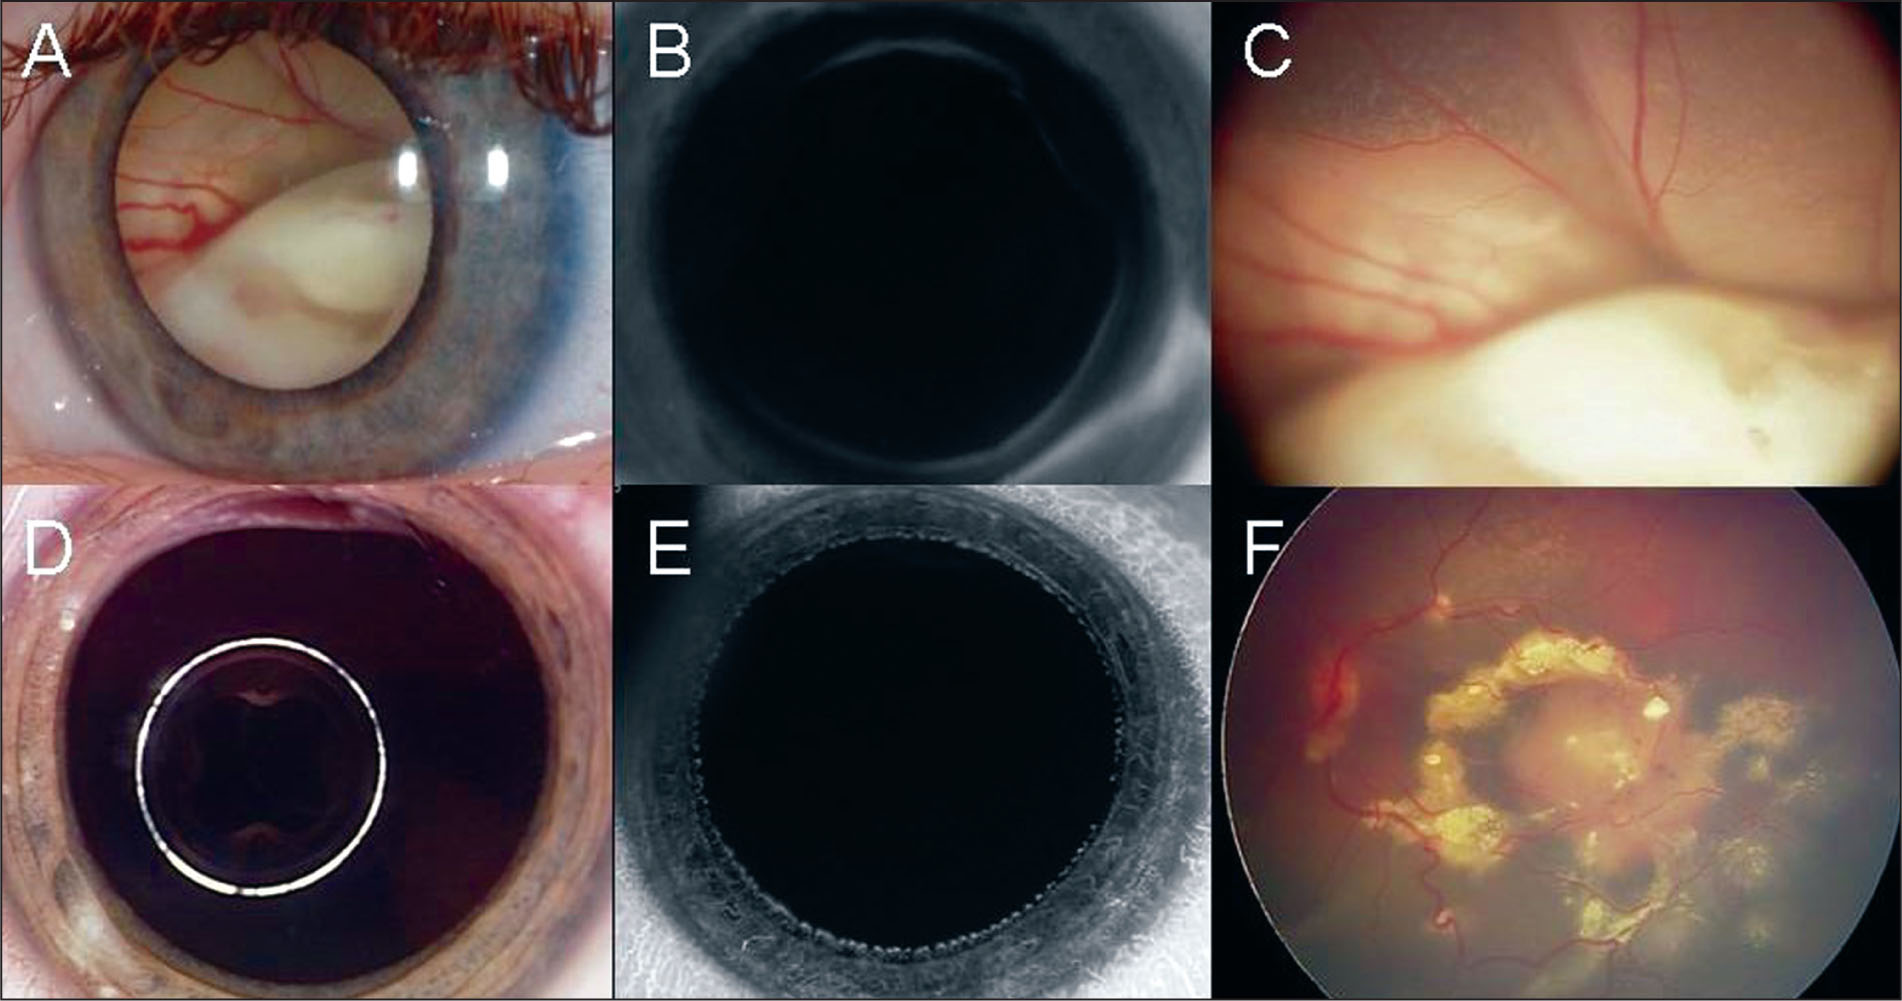 A 30-Month-Old Girl with Small Presumed Retinocytomas in the Right Eye and Advanced Retinoblastoma with Iris Neovascularization in the Left Eye. (A) Anterior Segment Photograph of the Left Eye Showing Massive Tumor and Retinal Detachment Behind the Clear Lens. (B) Iris Fluorescein Angiography Depicting Dye Leakage from Iris Neovascularization. (C) Fundus Image Revealing Group E Retinoblastoma. (D) After Chemoreduction, the Leukocoria Had Disappeared. (E) No Sign of Iris Neovascularization on Iris Fluorescein Angiography. (F) Complete Tumor Regression and Resolution of the Retinal Detachment Is Found.